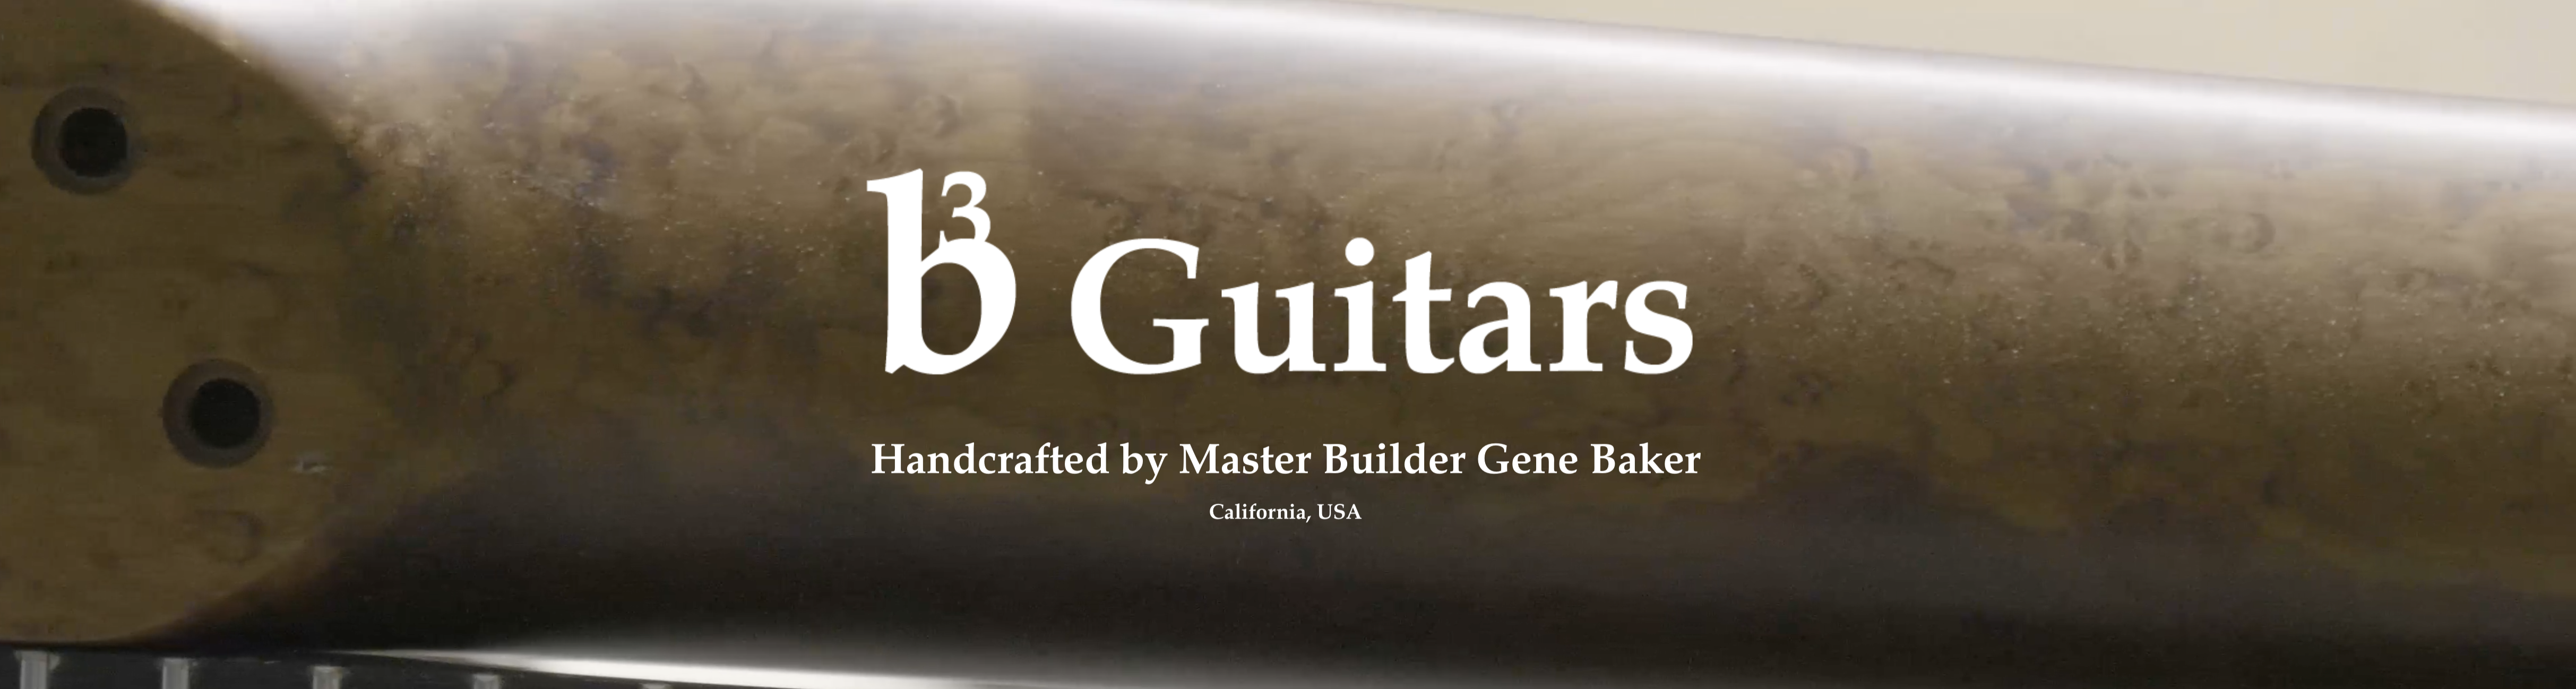 b3 Guitars by Gene Baker Dealer Canada